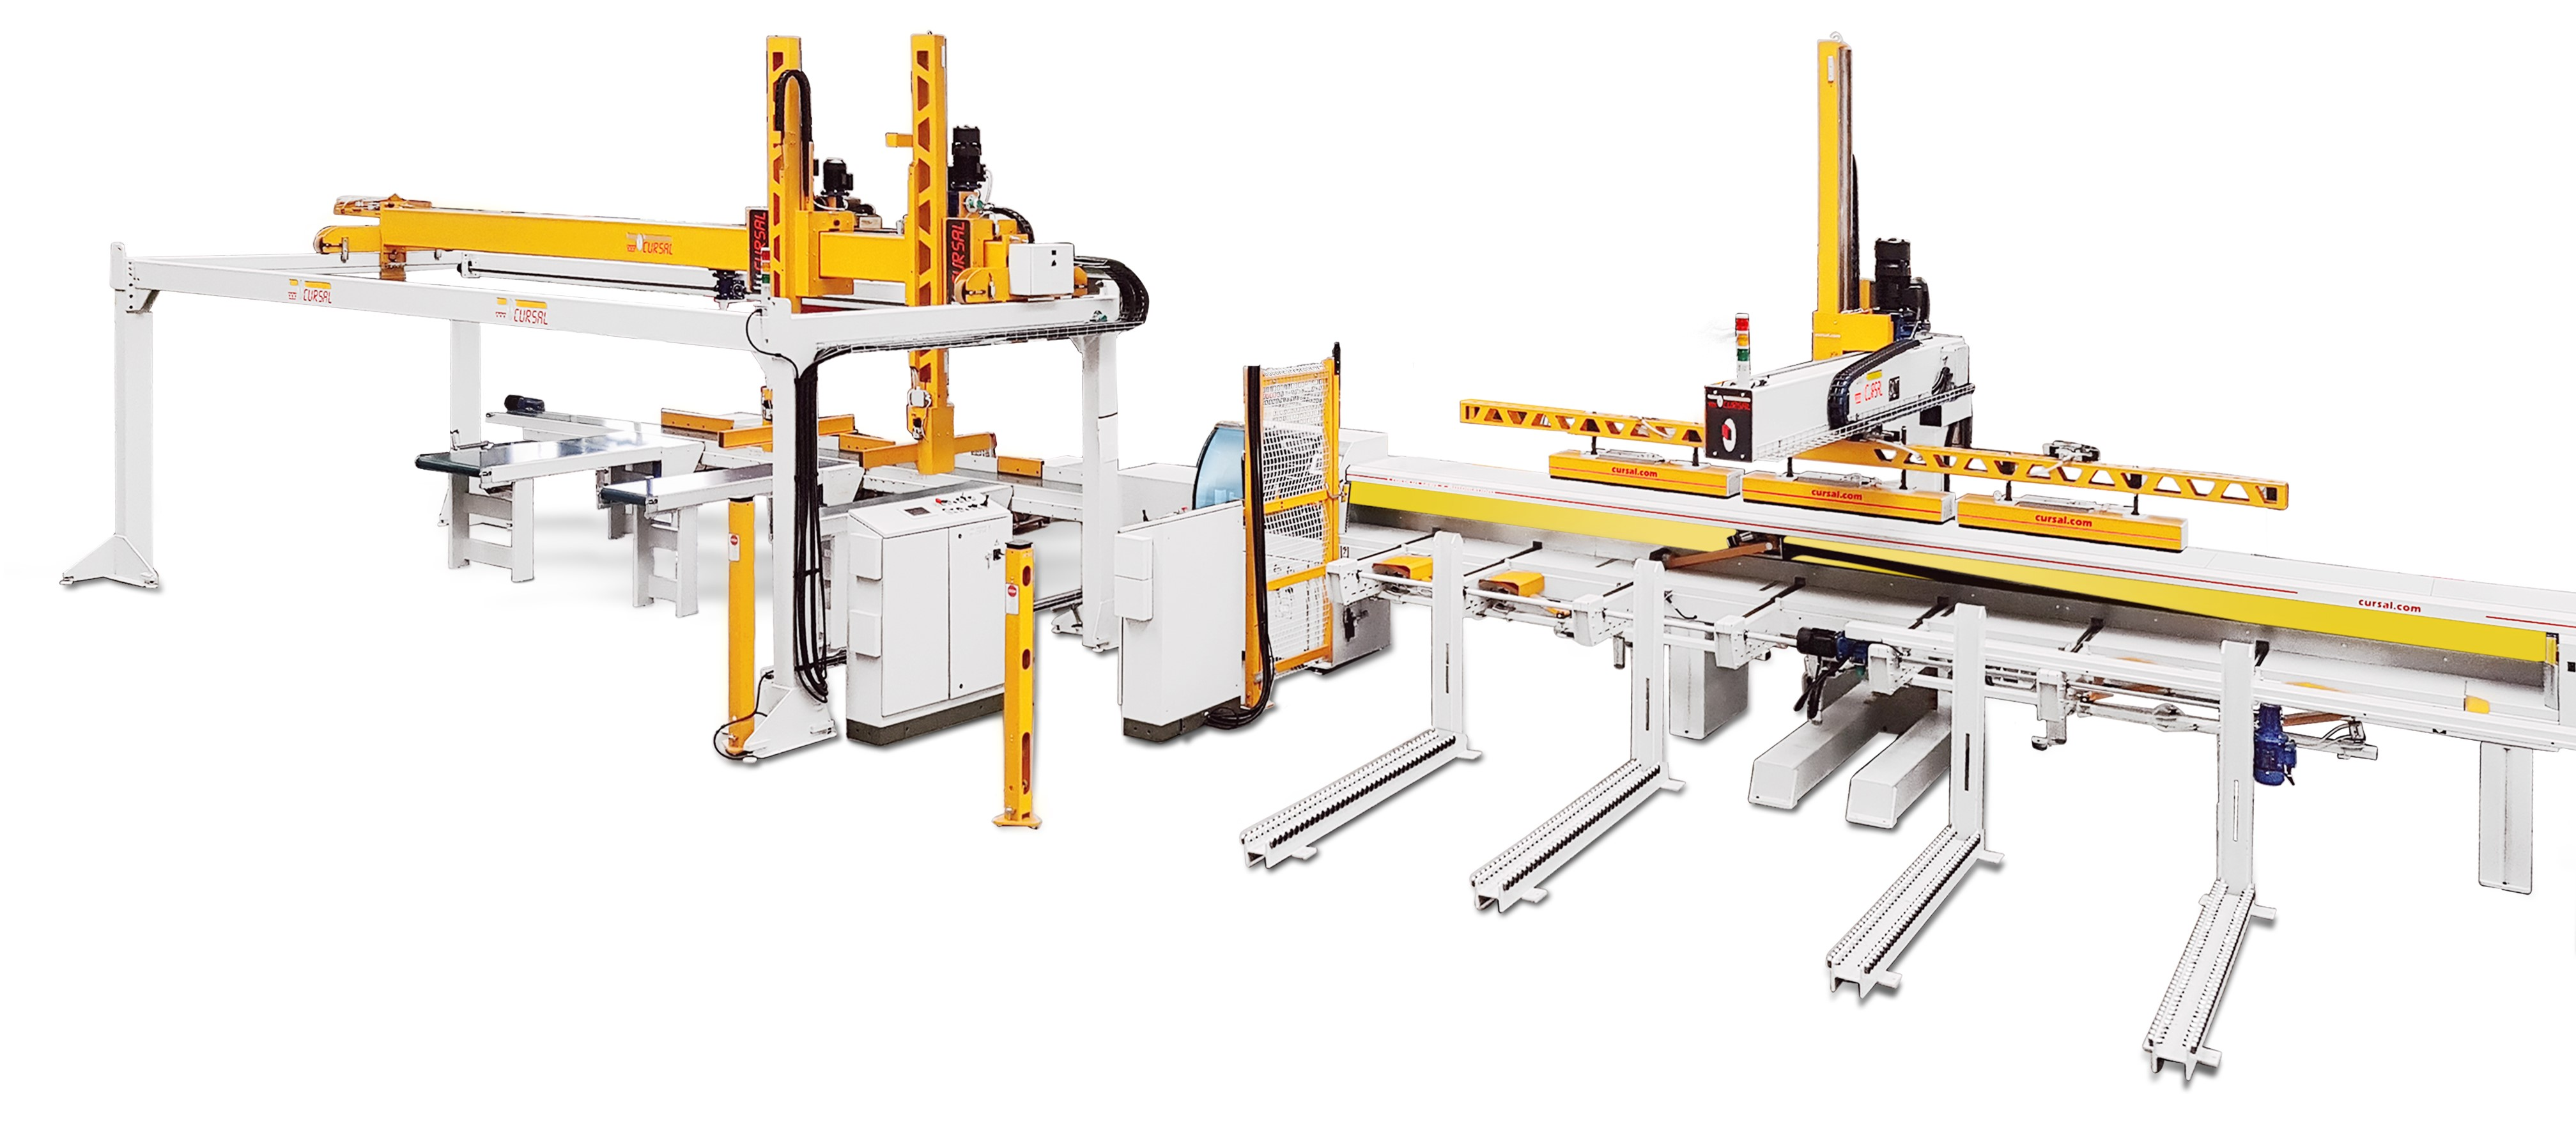 optimizing-push-feed-saws-trsi-500-23